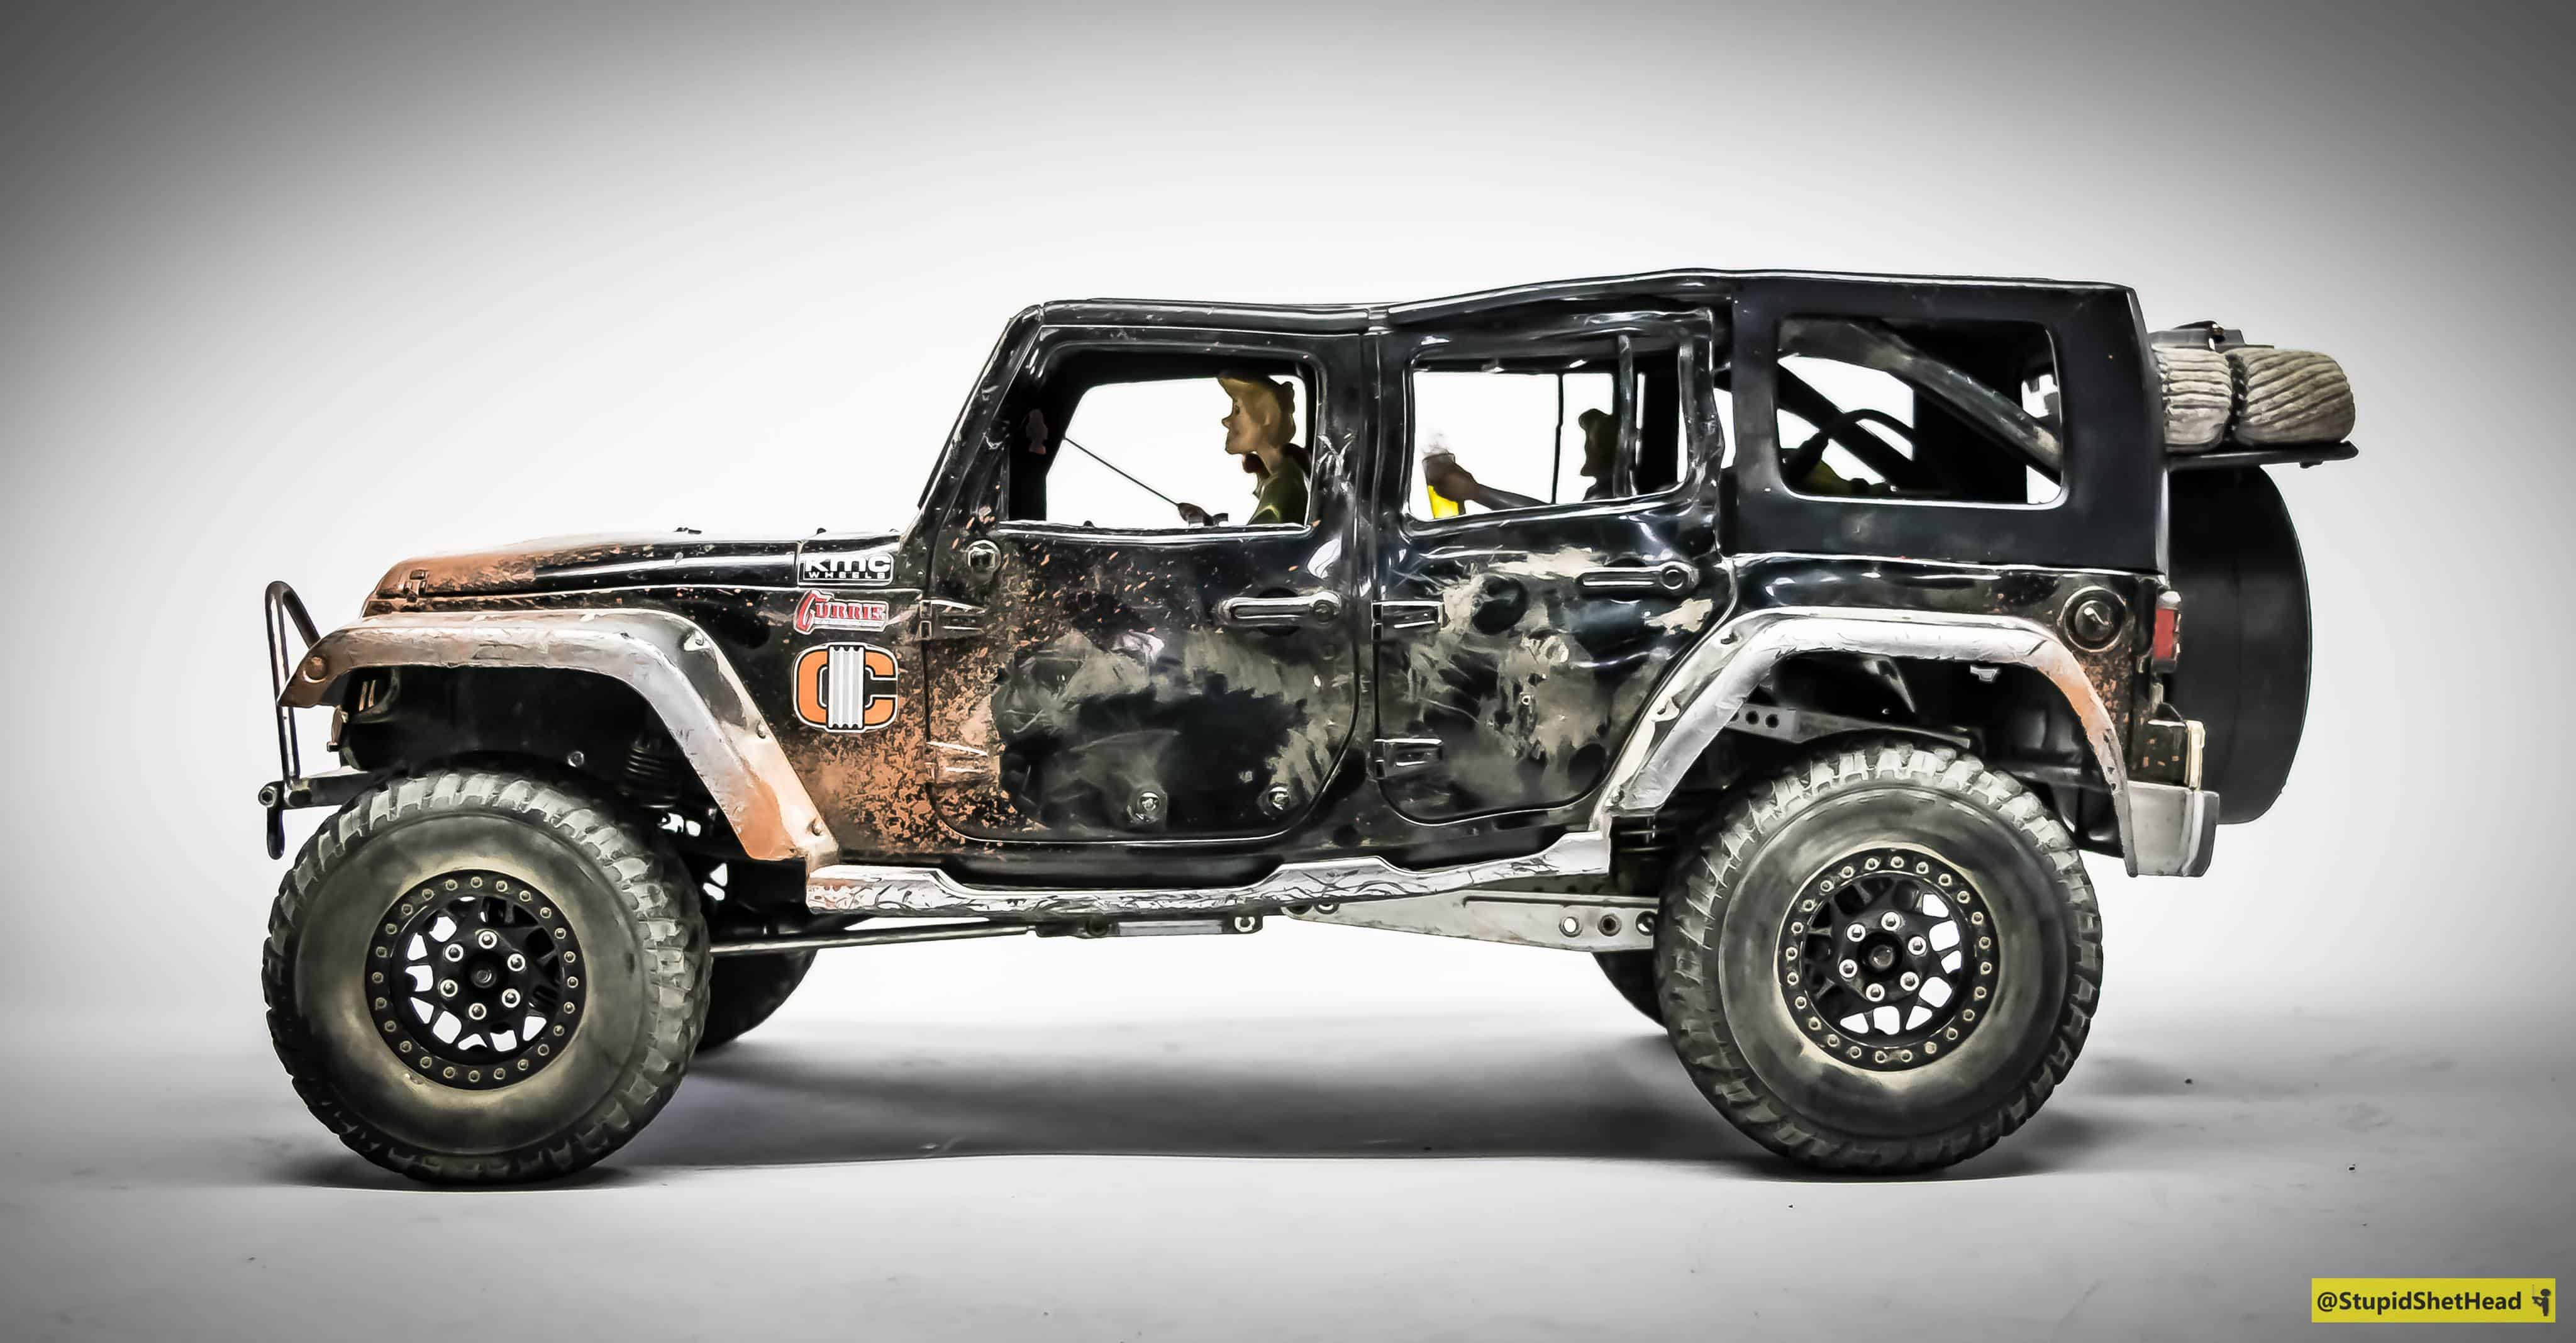 A Busted Beauty: James Tabar's #ProjectMadJeep